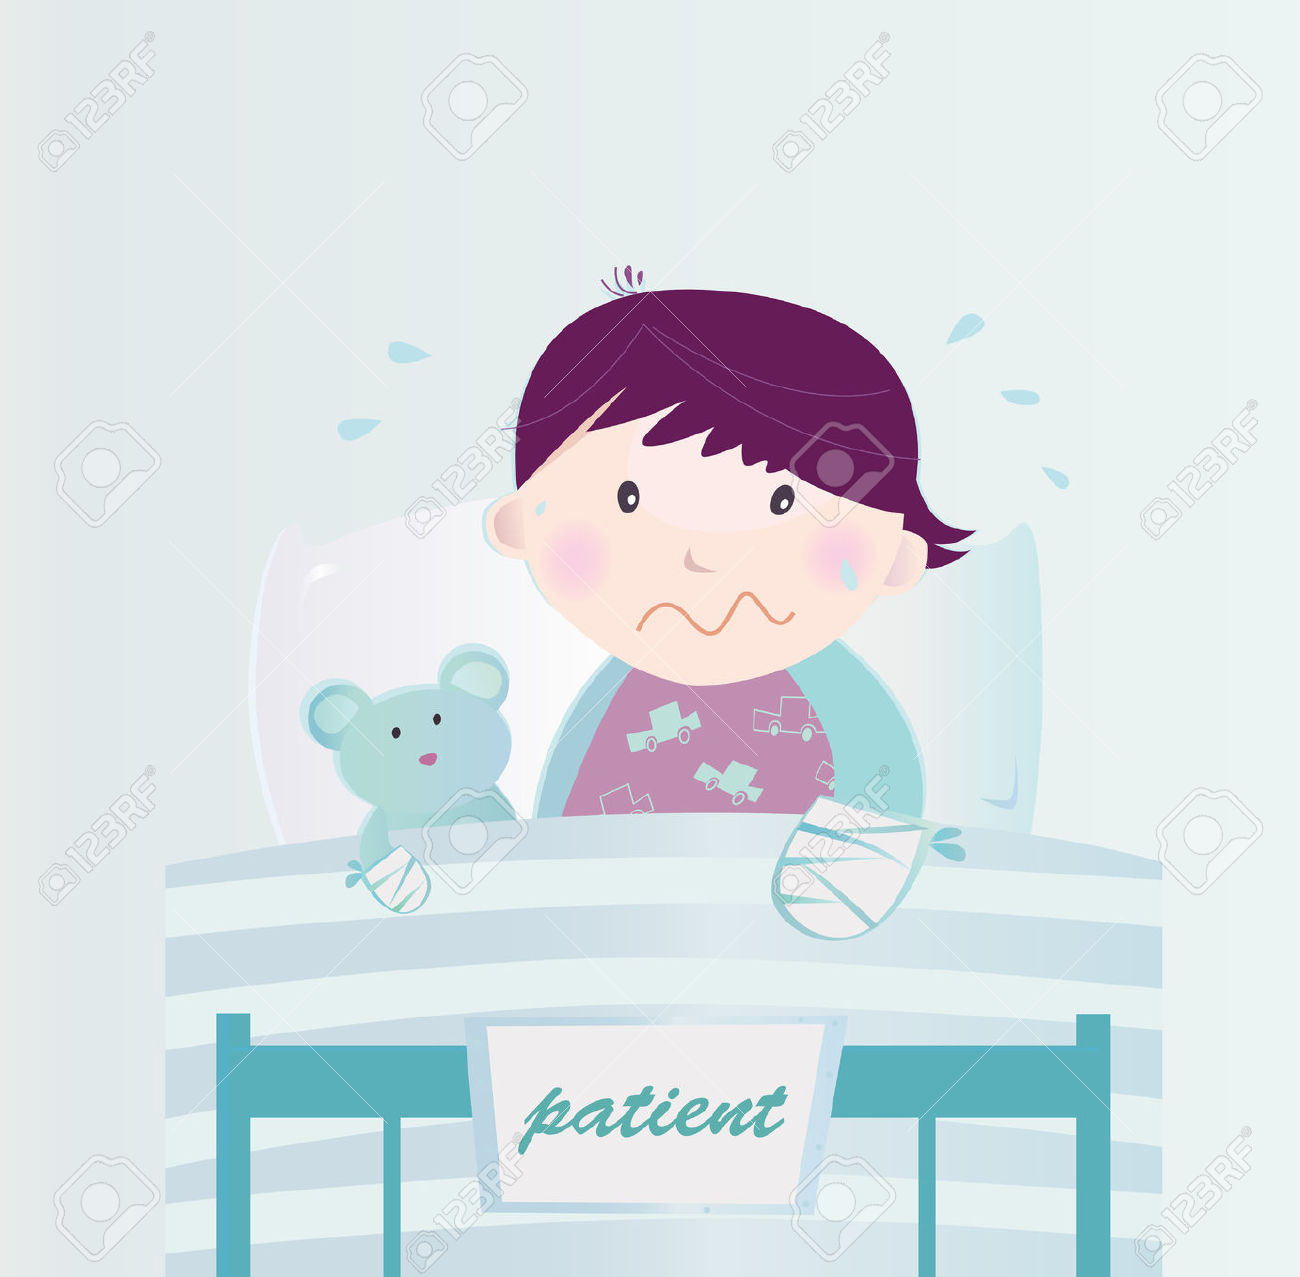 Cute small bed cartoon clipart svg transparent library Ill Child With Broken Hand In The Hospital. Cute Small Child ... svg transparent library